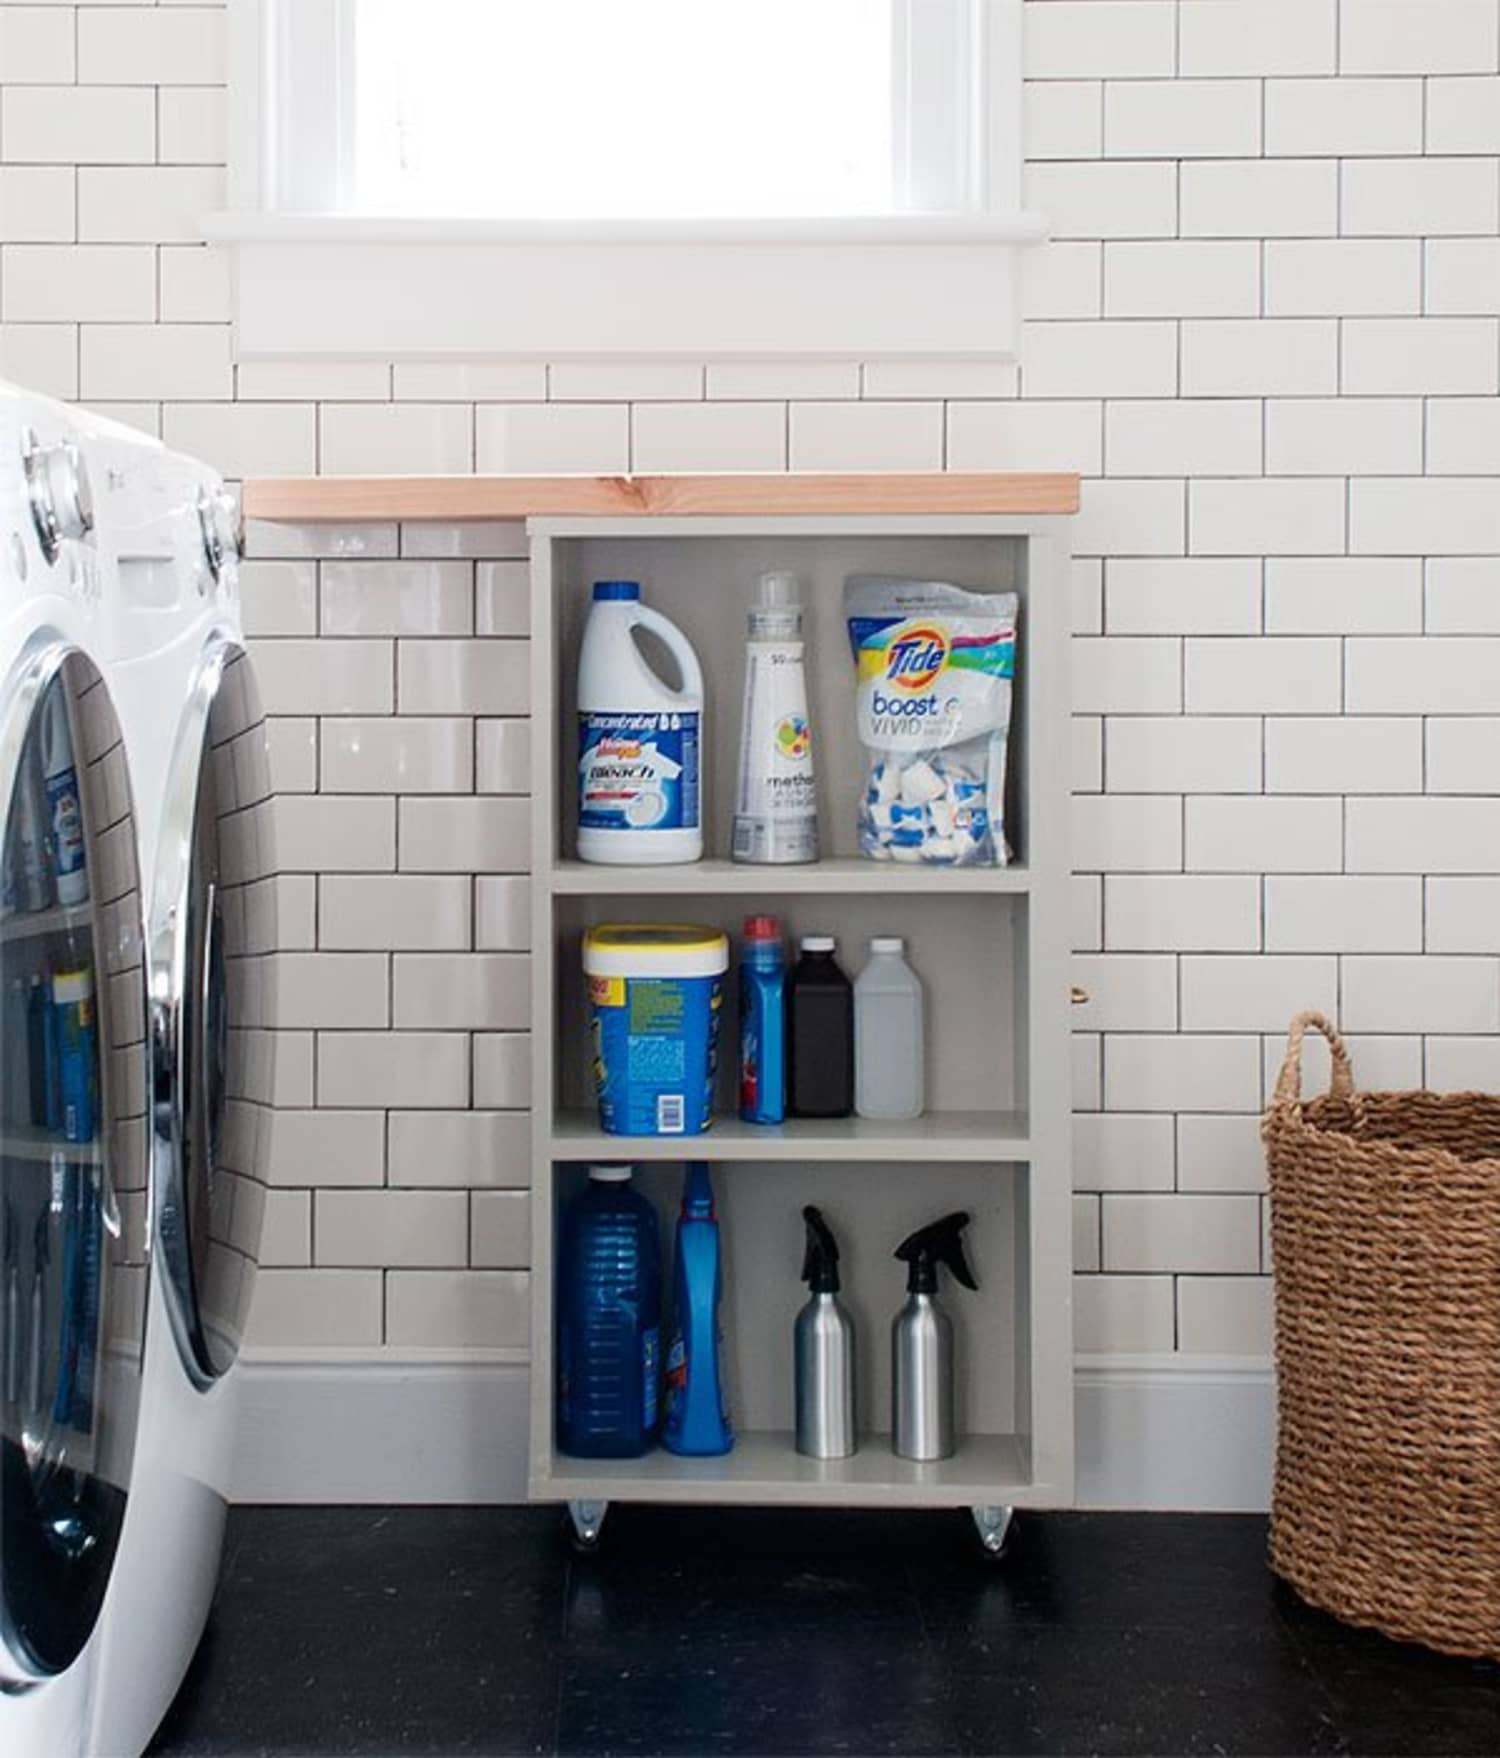 10 Projects Amp Products To Fill Awkward Appliance Gaps